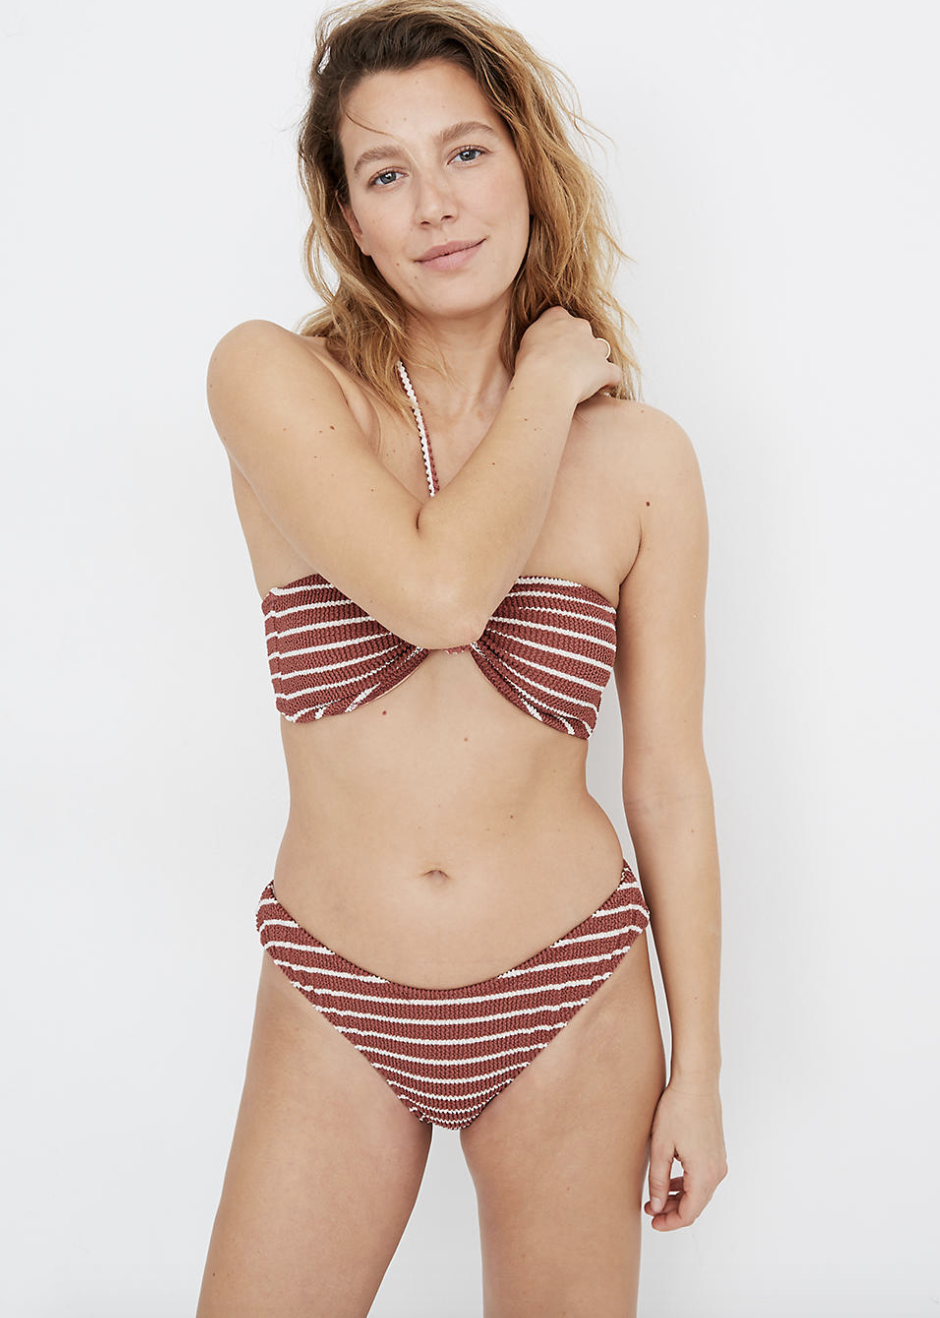 a model wearing a textured burgundy bandeau bikini top with white vertical stripes and matching bottoms